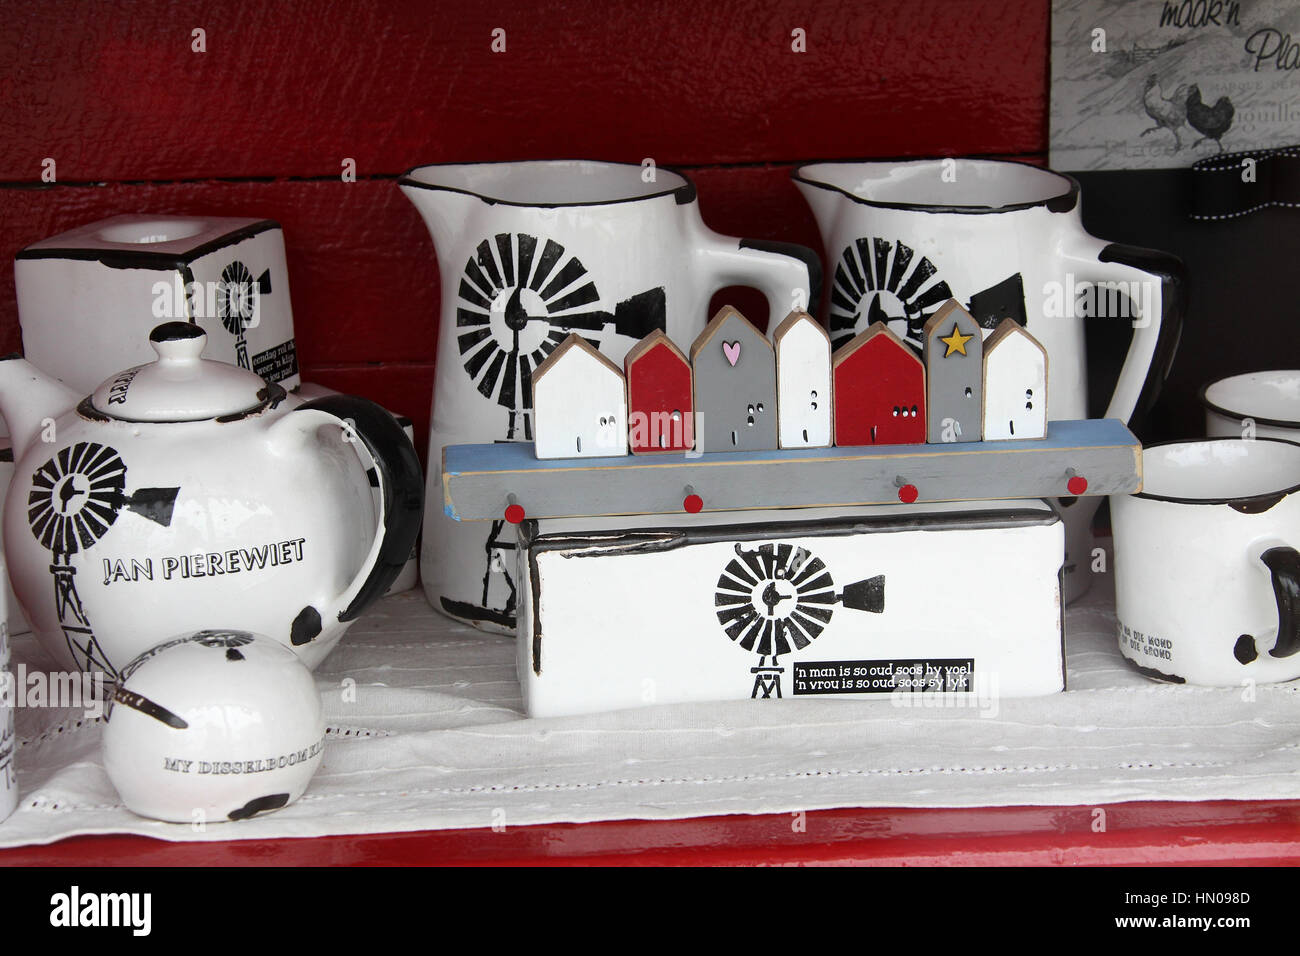 Souvenirs in a shop window at Swakopmund in Namibia - Stock Image